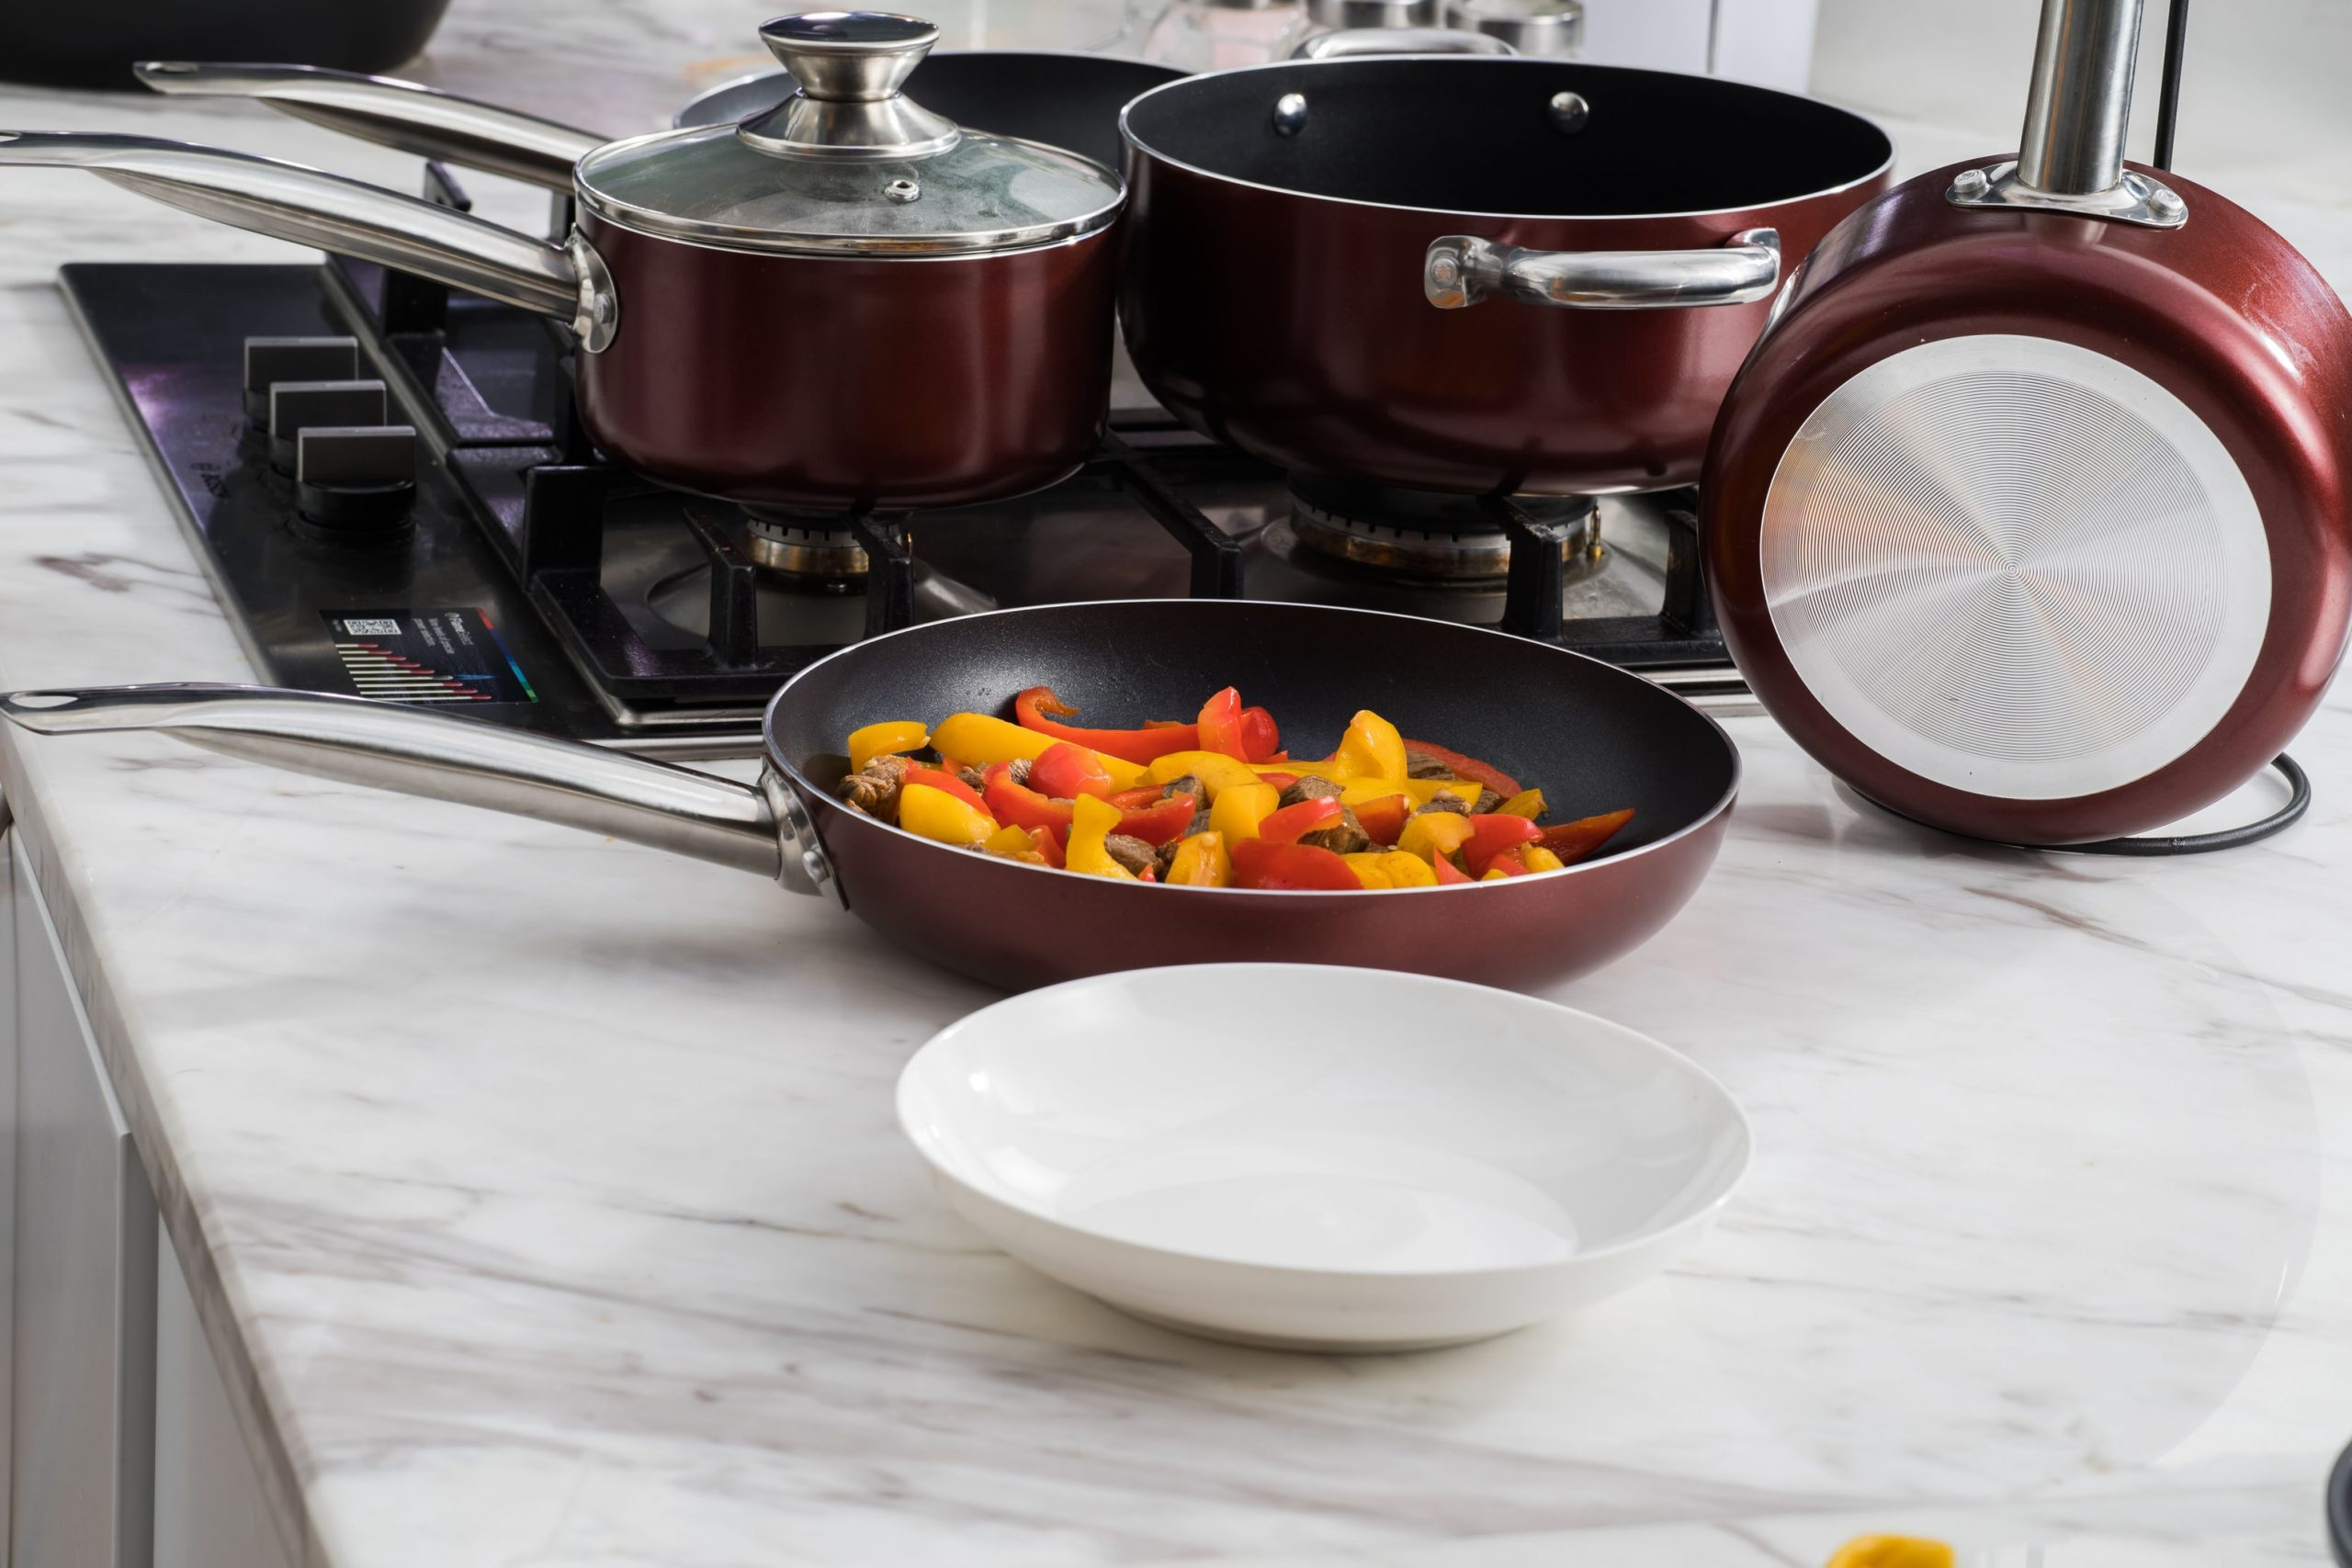 We round up the 10 best cookware and cooking pan sets for your kitchen.